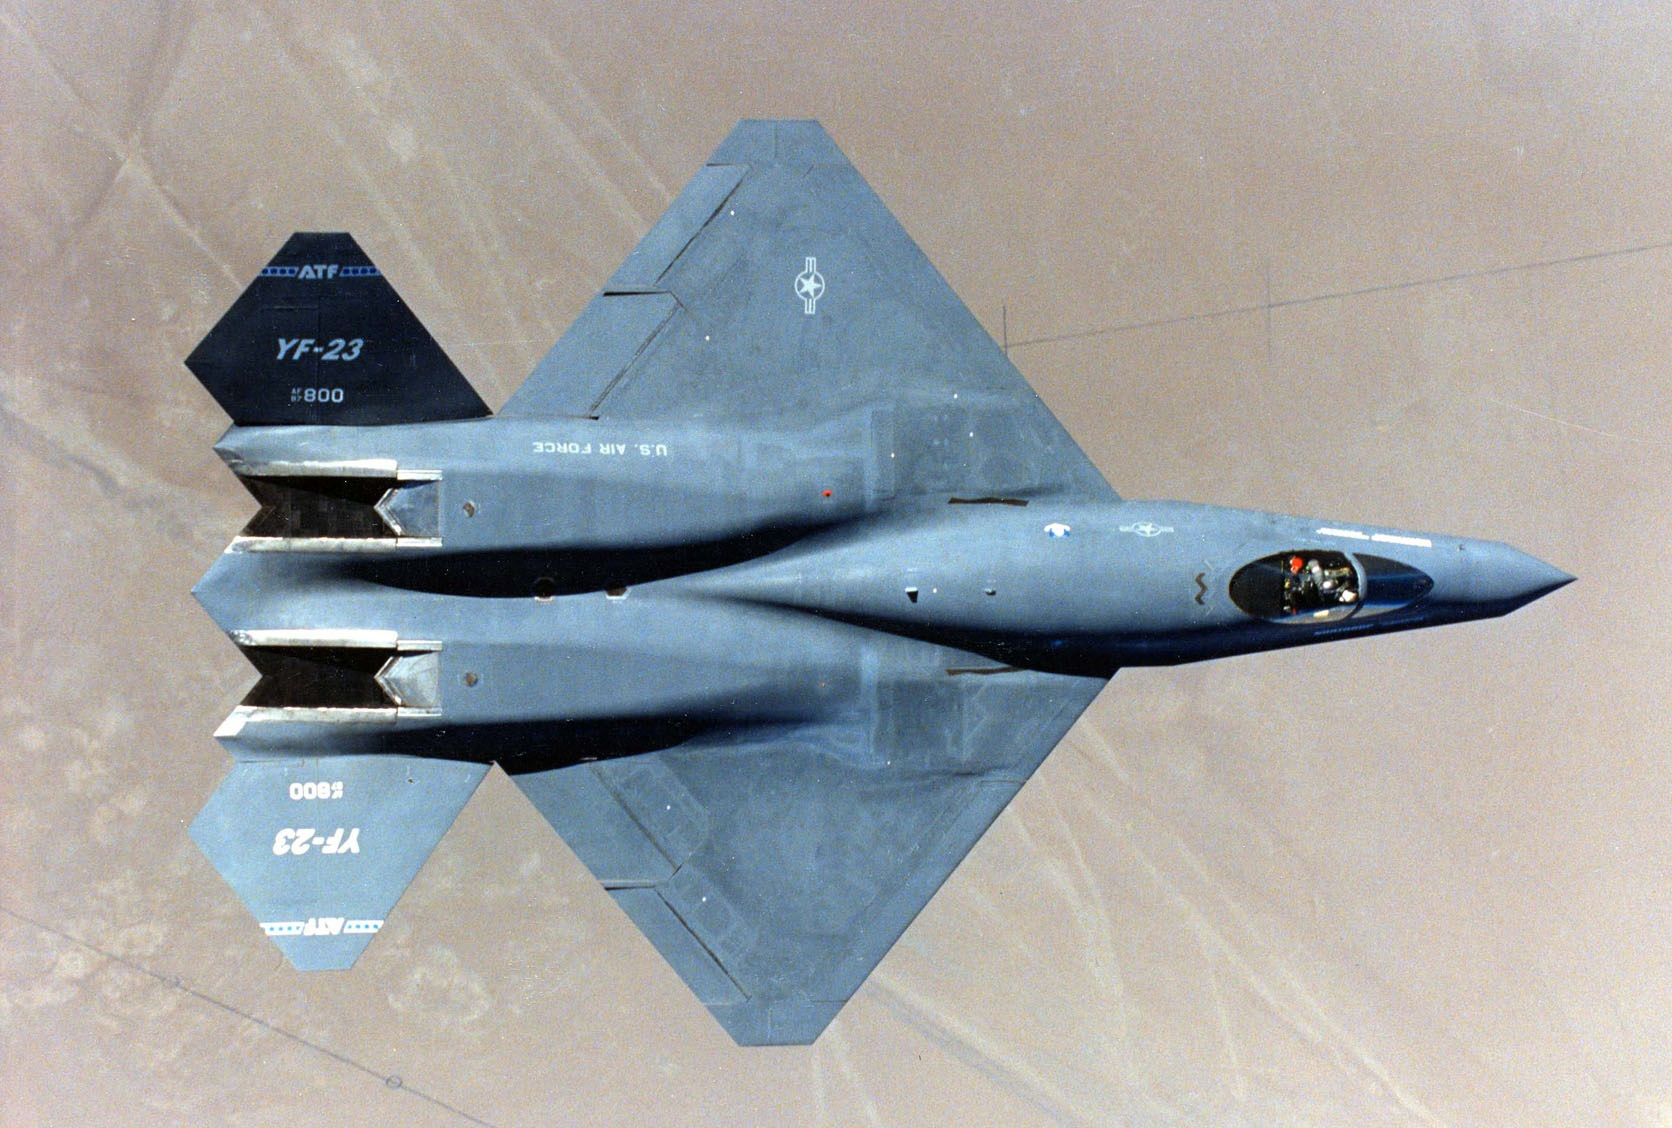 See This Stealth Fighter? It Almost Turned the F-22 Into Just Another